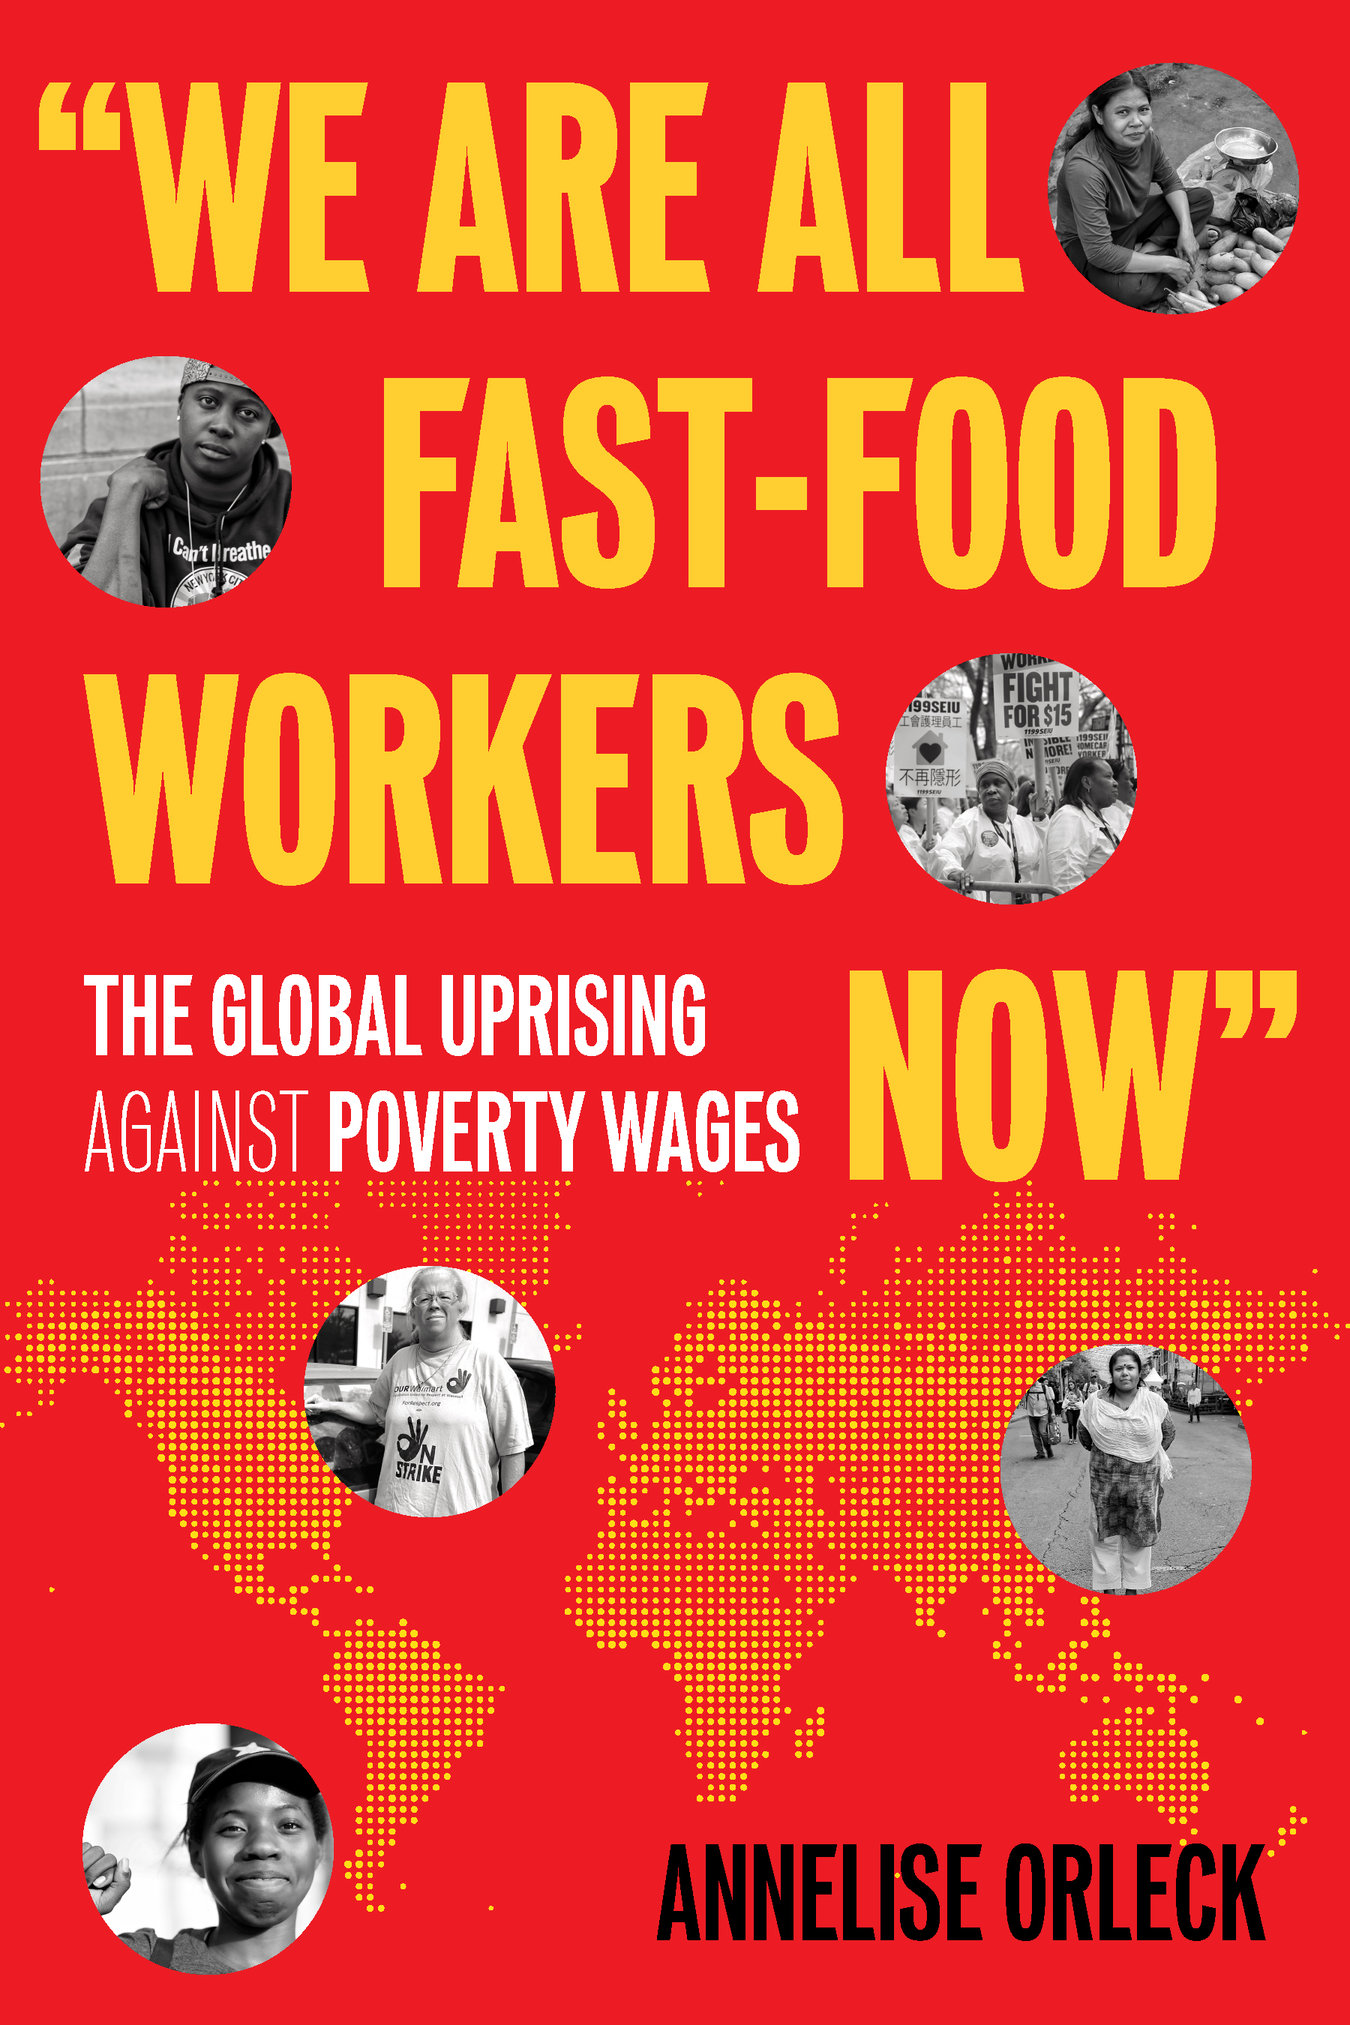 We Are All Fast-Food Workers Now - The Global Uprising Against Poverty Wages